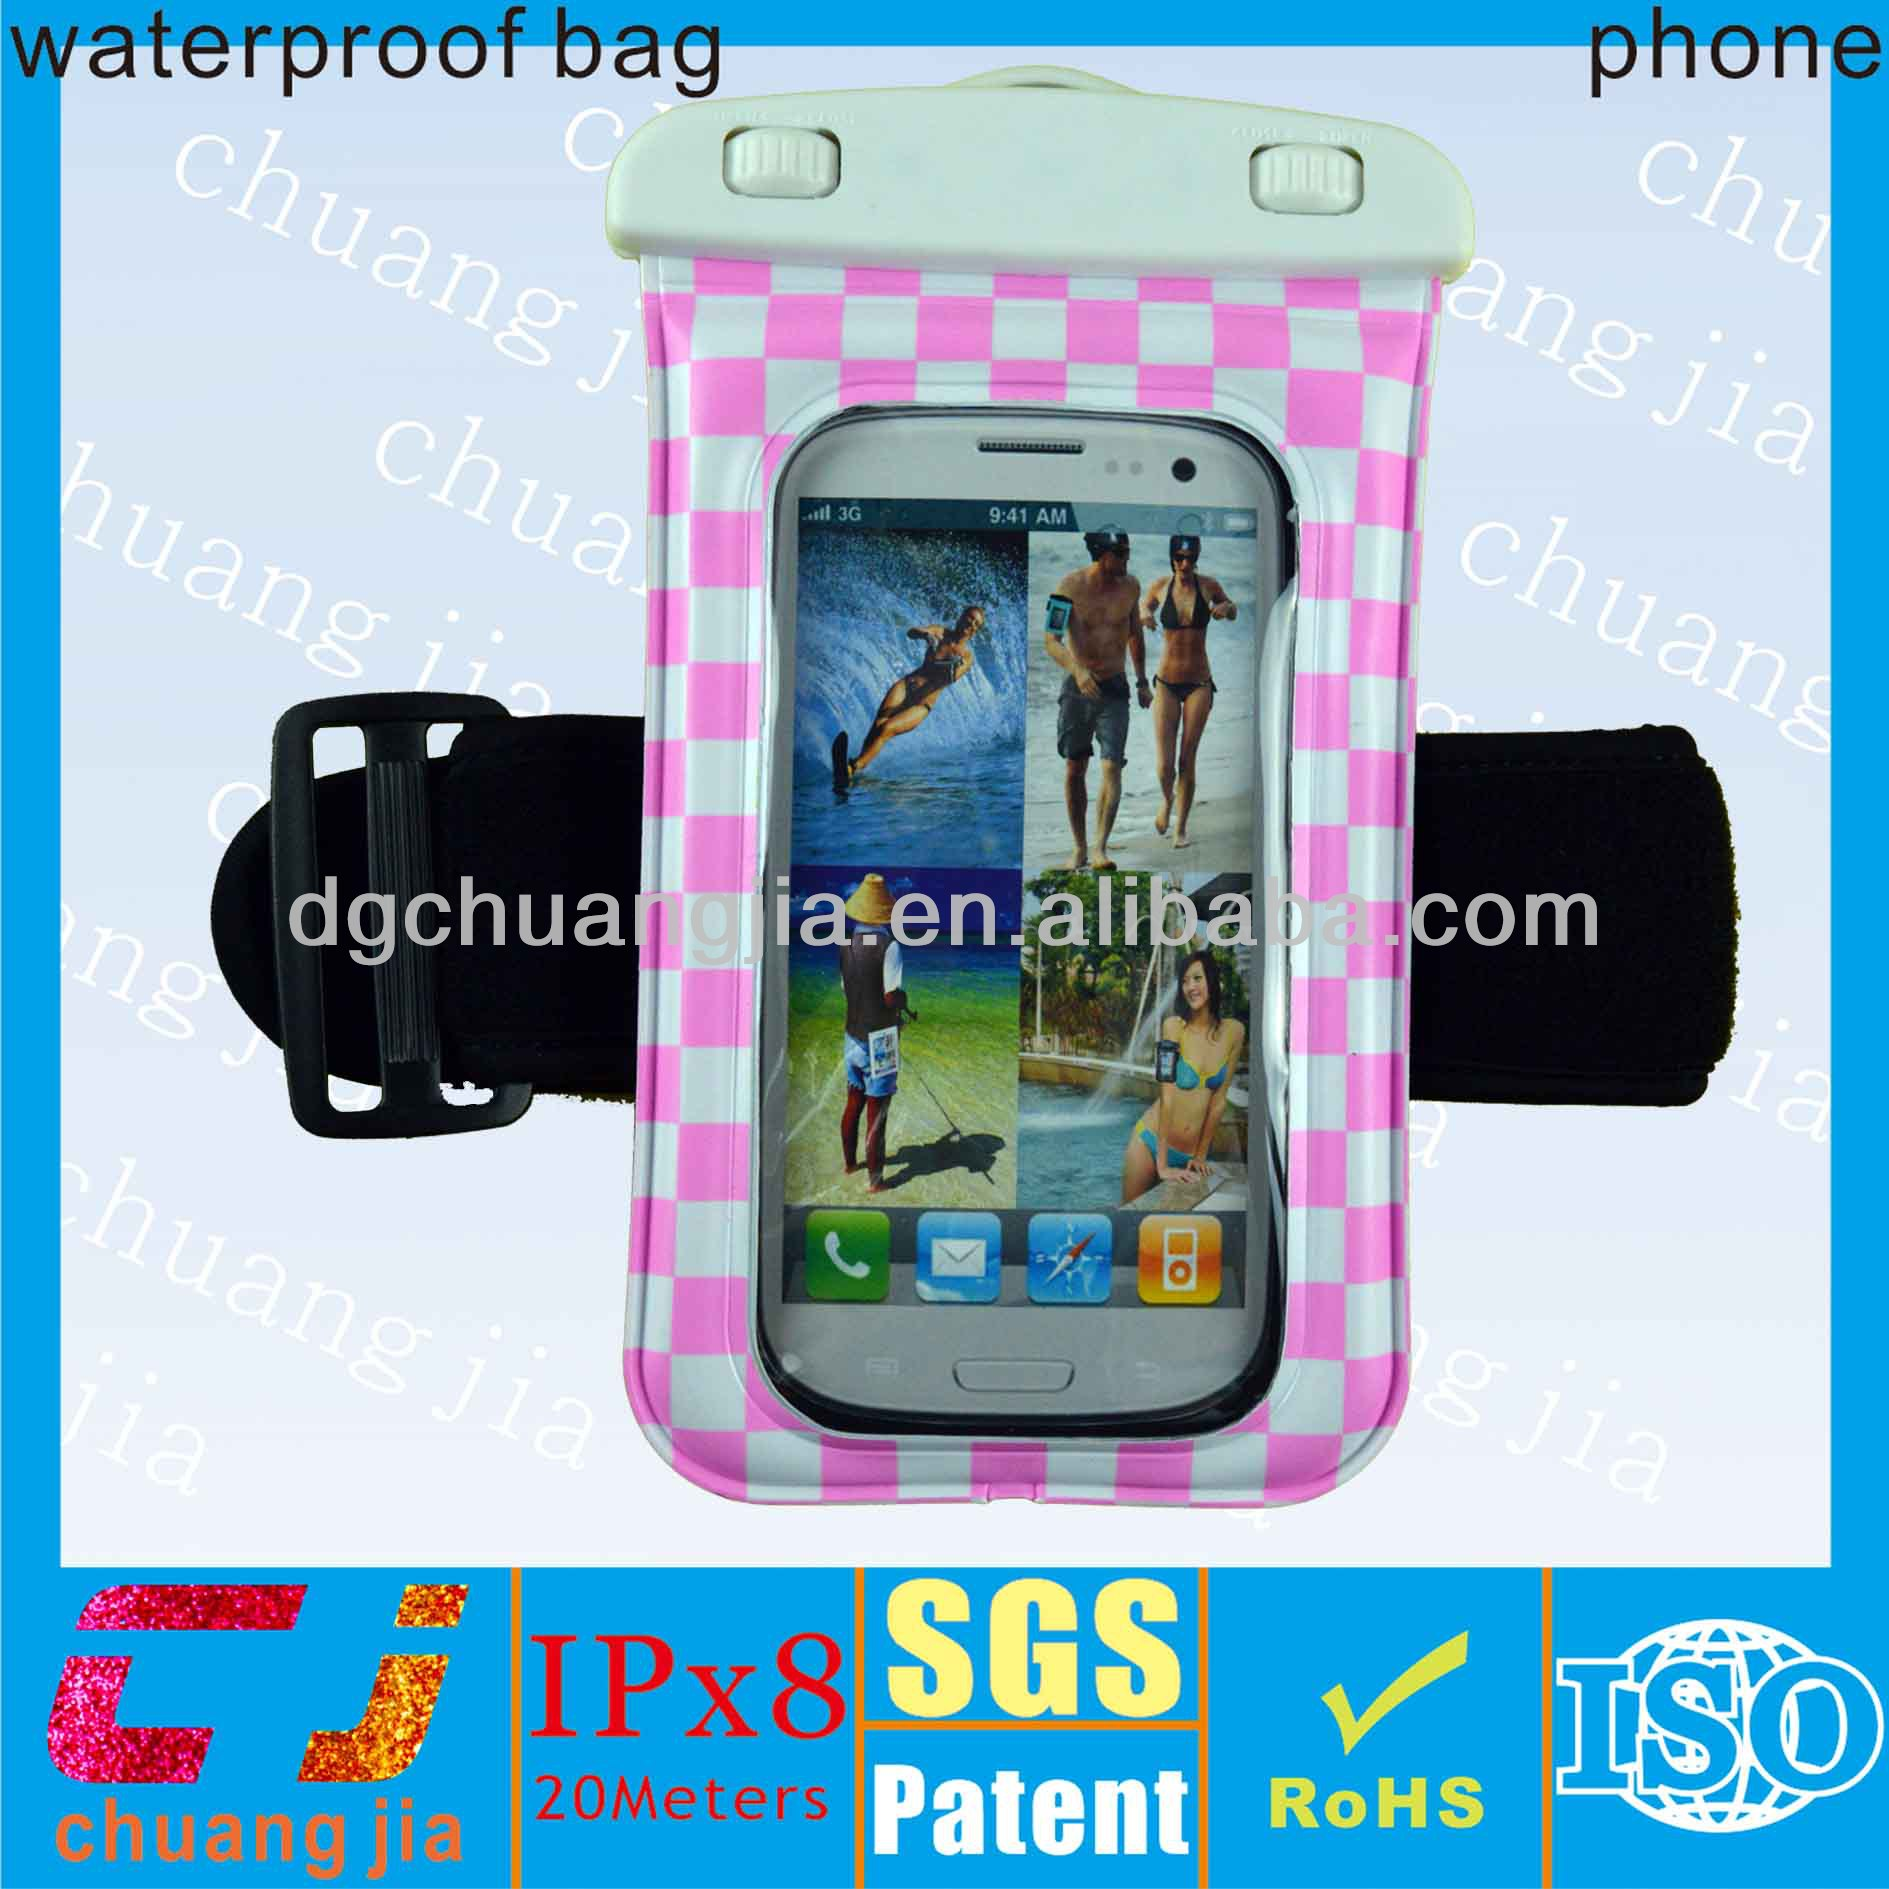 Soft pvc waterproof cell phone bag for samsung galaxy s3 i9300